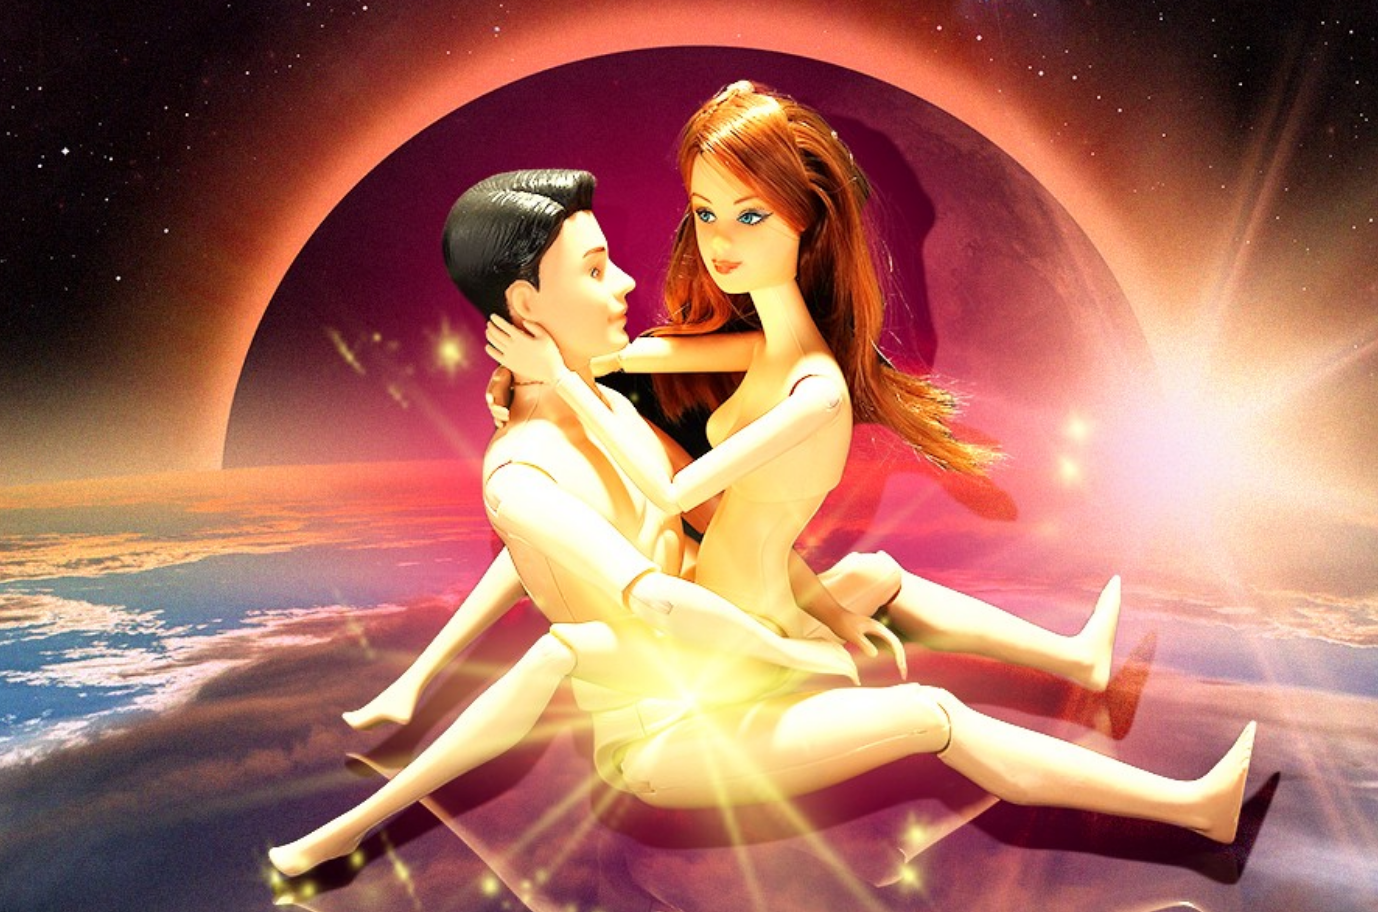 Here's Why the Solar Eclipse Is Making Everyone Super Horny